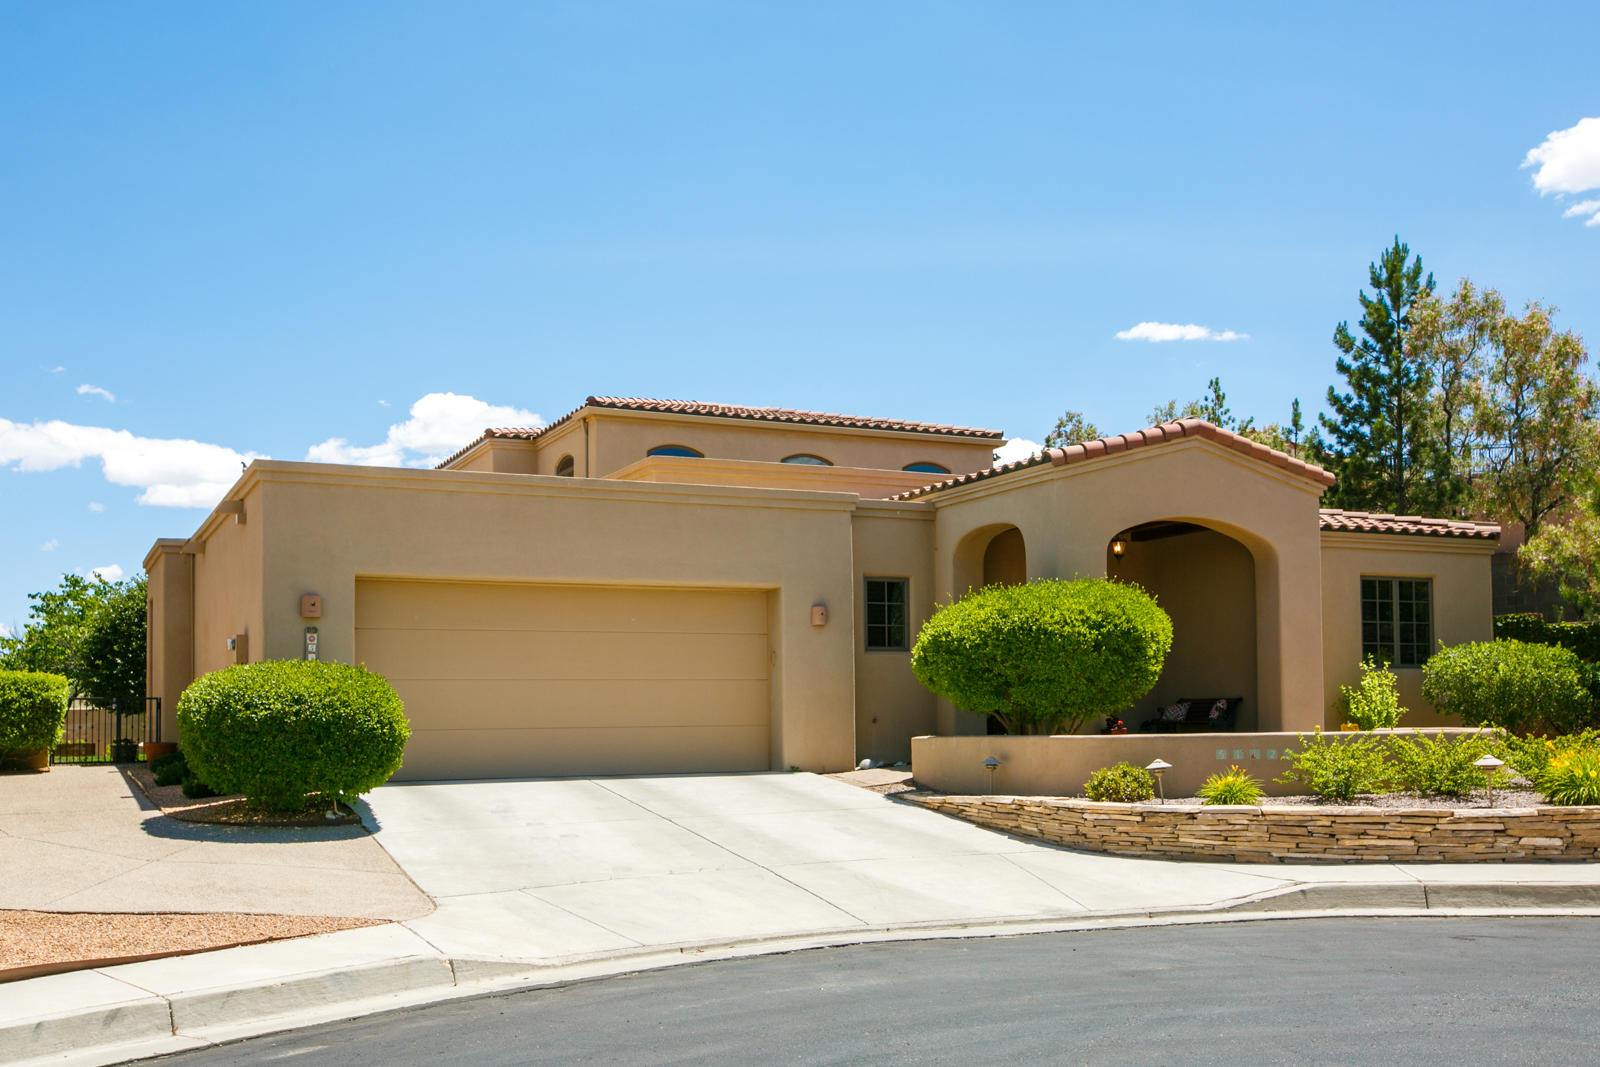 5112 COYOTE HILL Way NW, Albuquerque, NM 87120 - Albuquerque, NM real estate listing